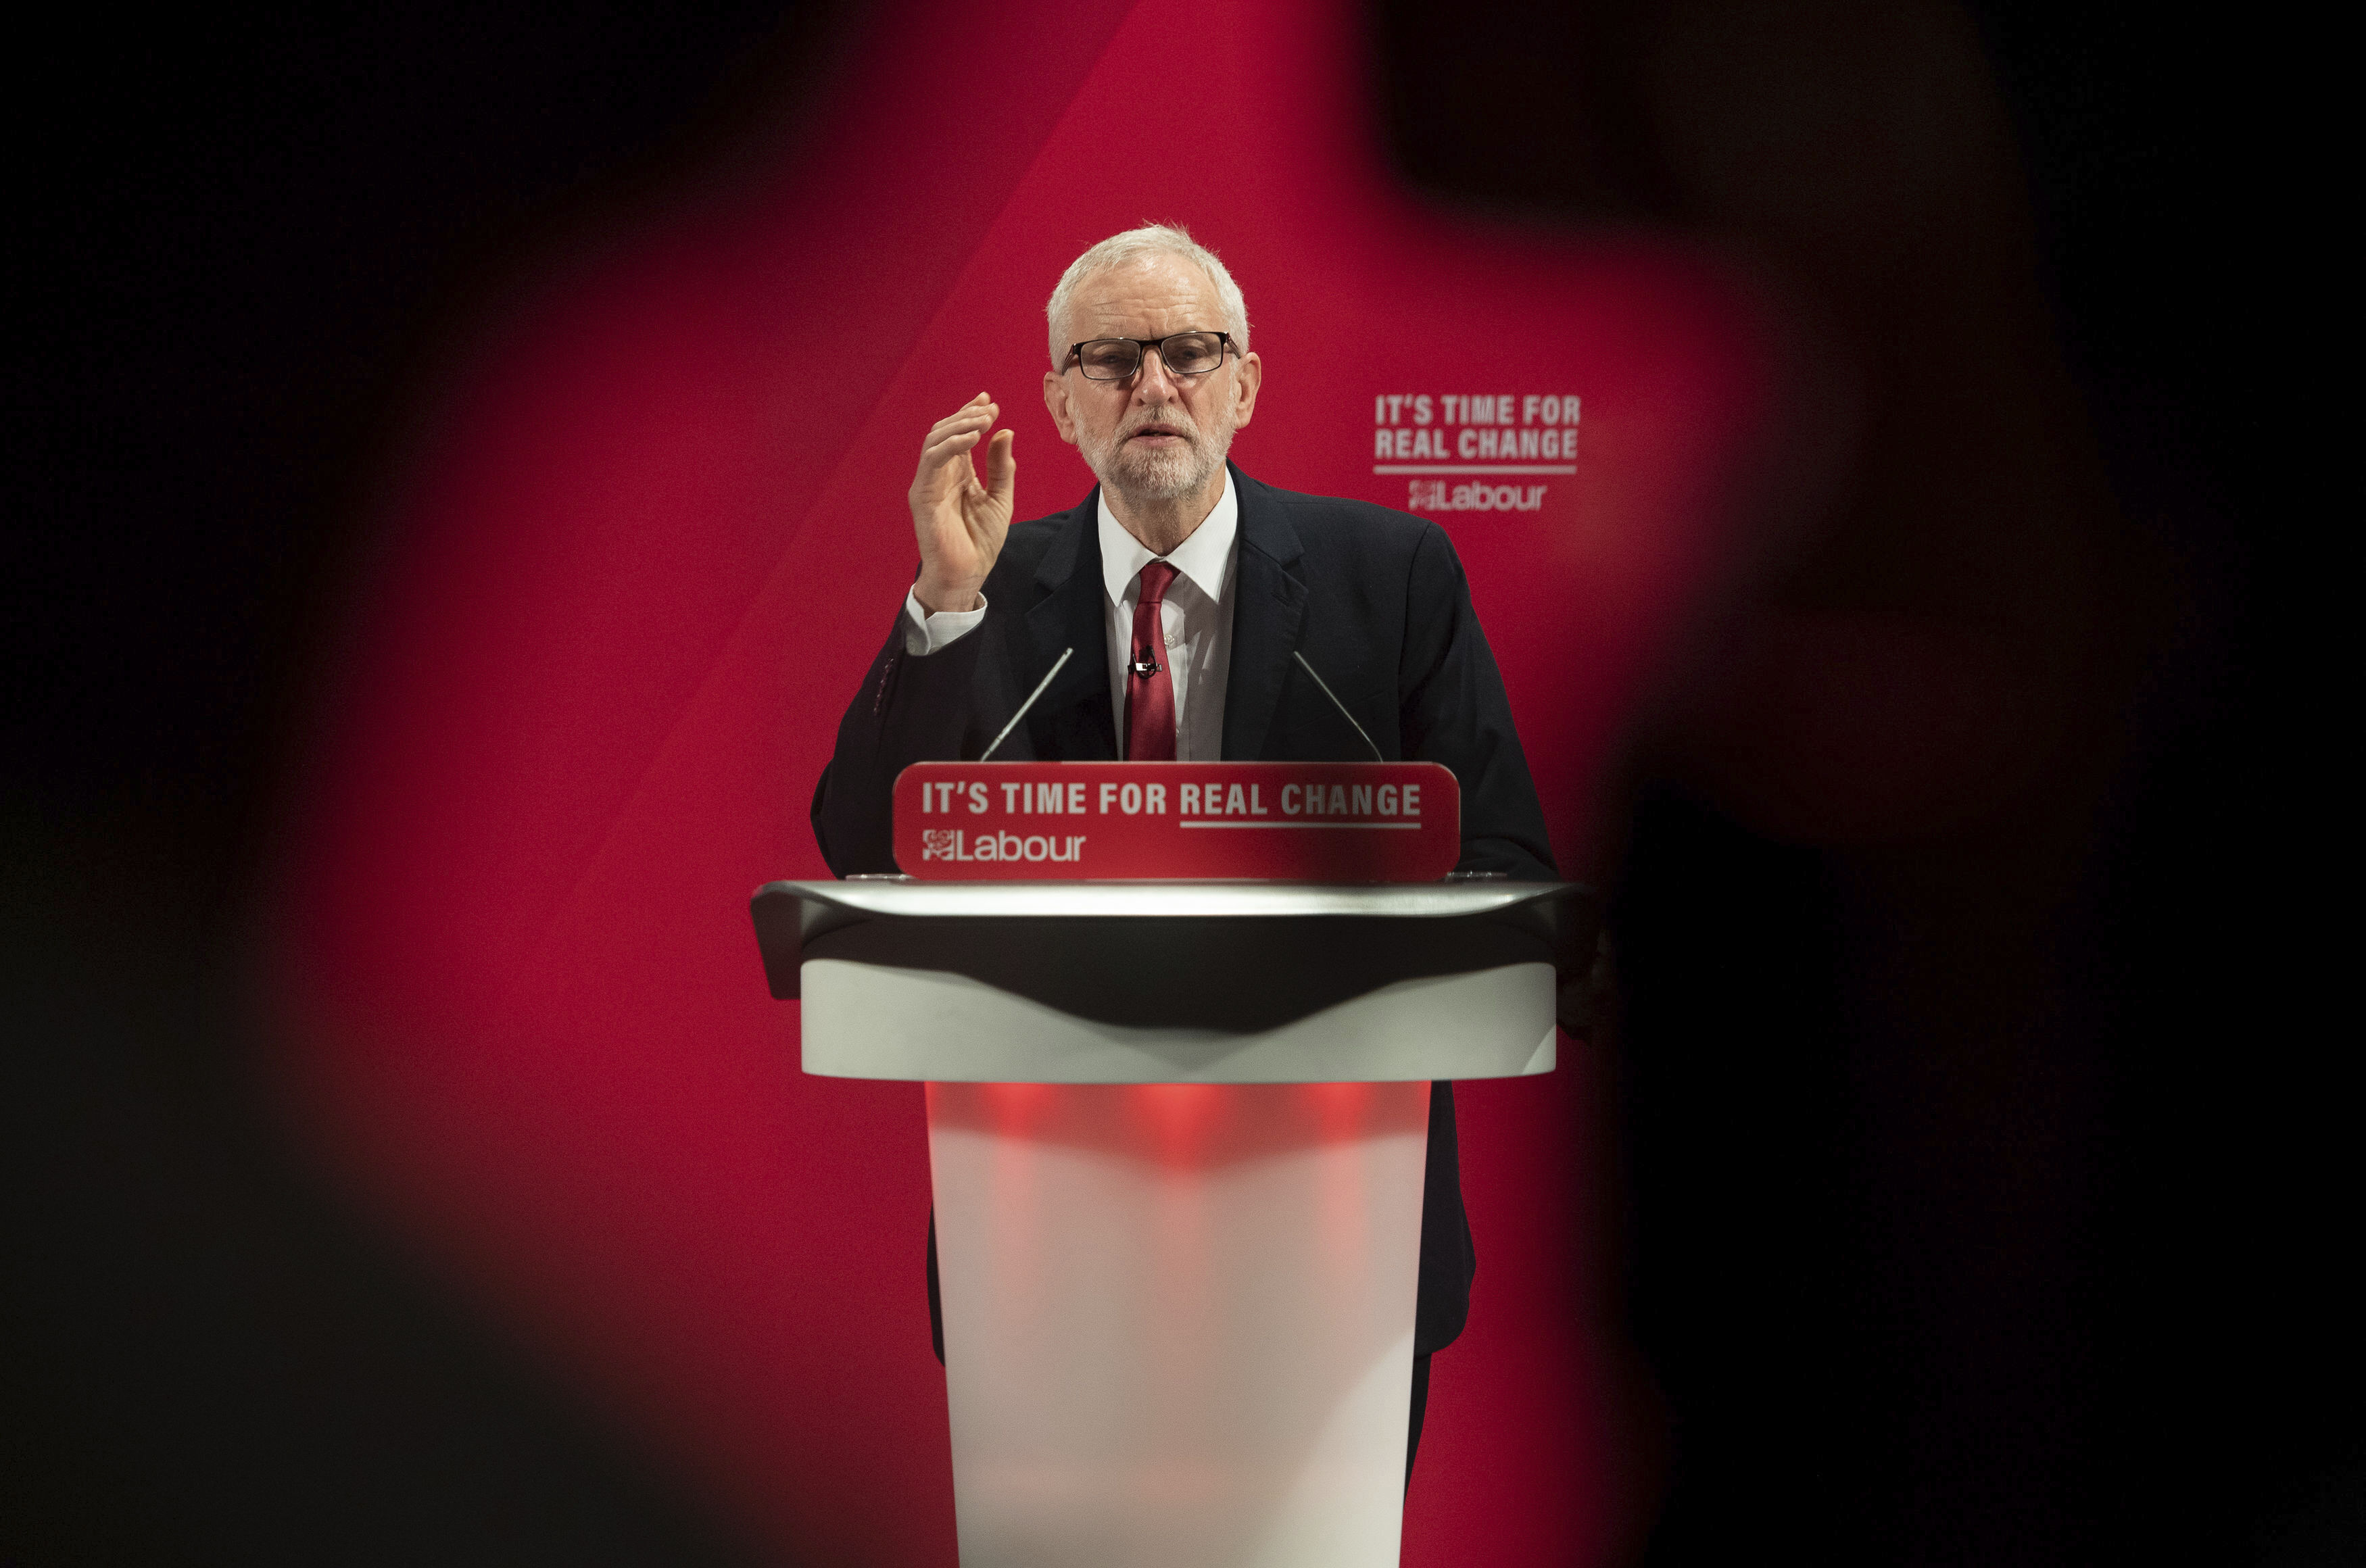 Britain's main opposition Labour Party leader Jeremy Corbyn speaks at the launch of the Labour Party race and faith manifesto, in London, on Nov. 26, 2019.